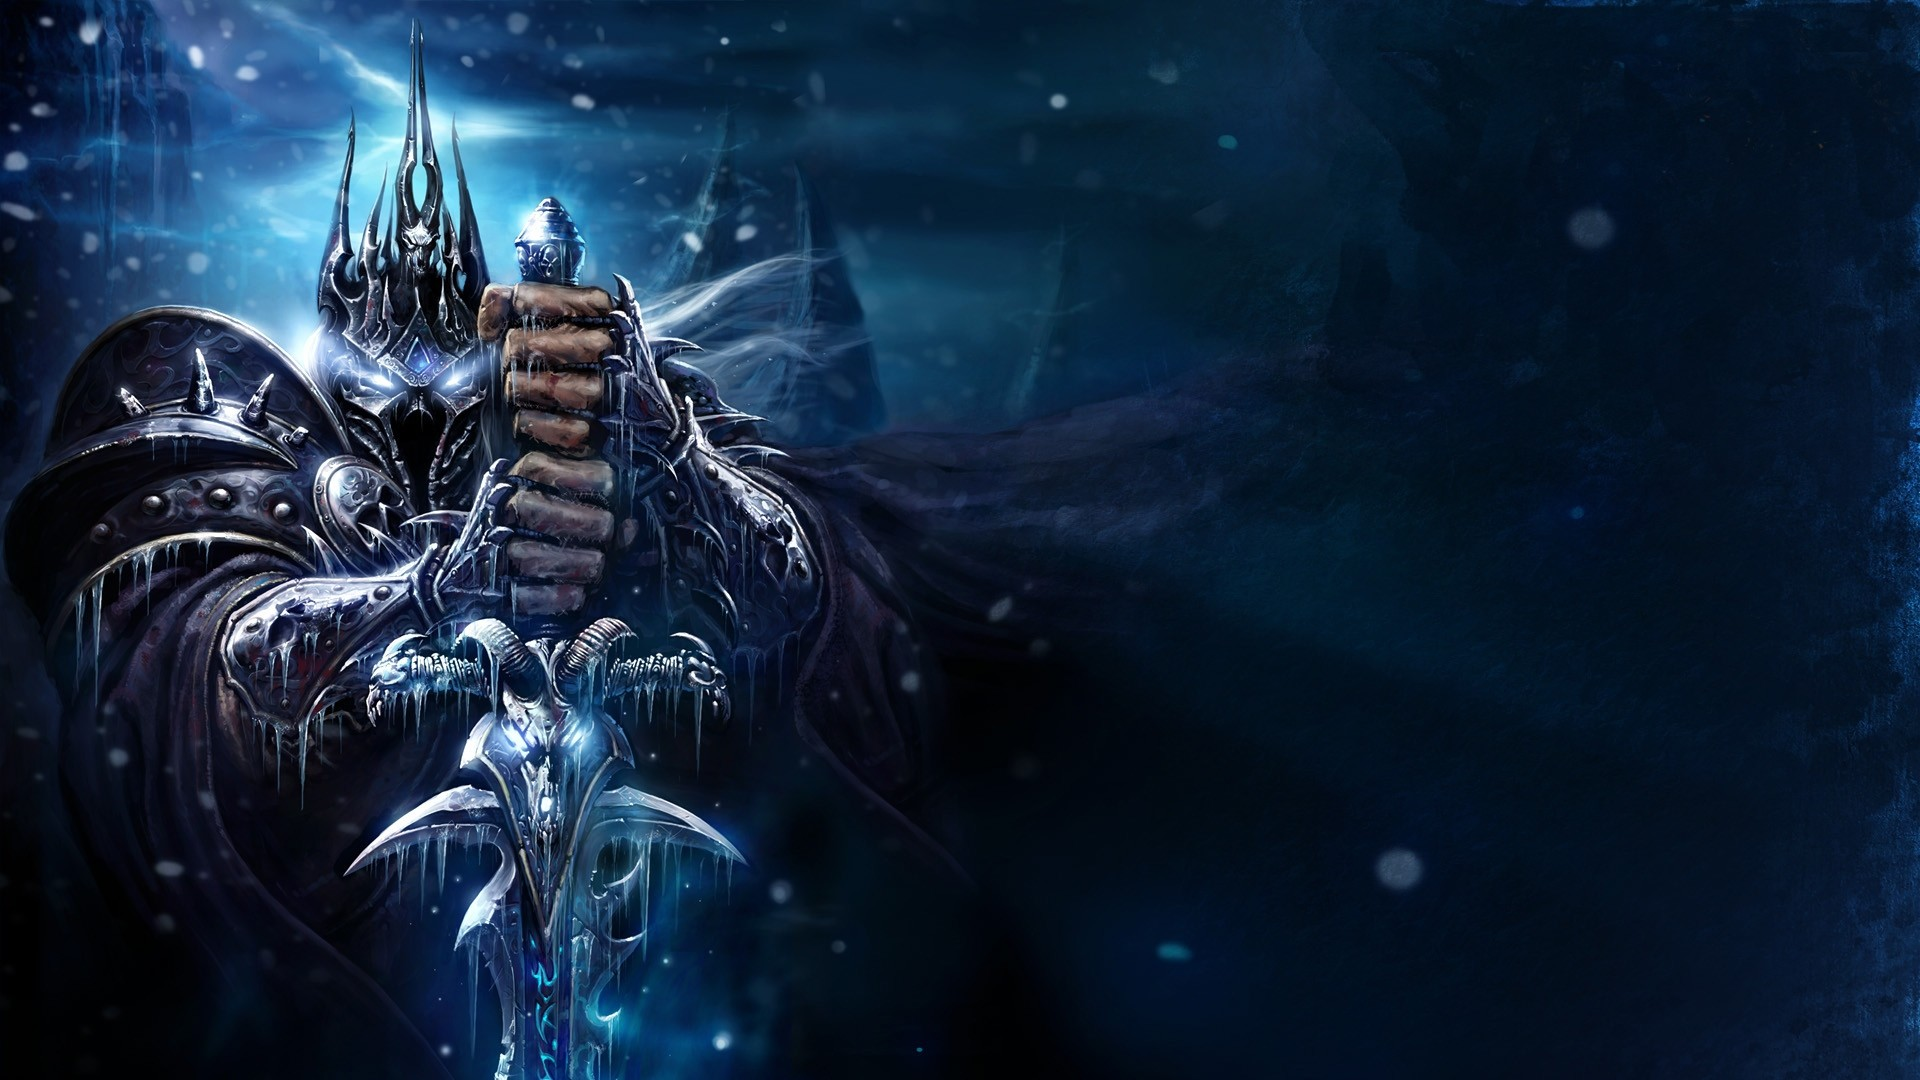 1920x1080 Download Wallpaper  Warcraft, Lich king, Sword, Cold .